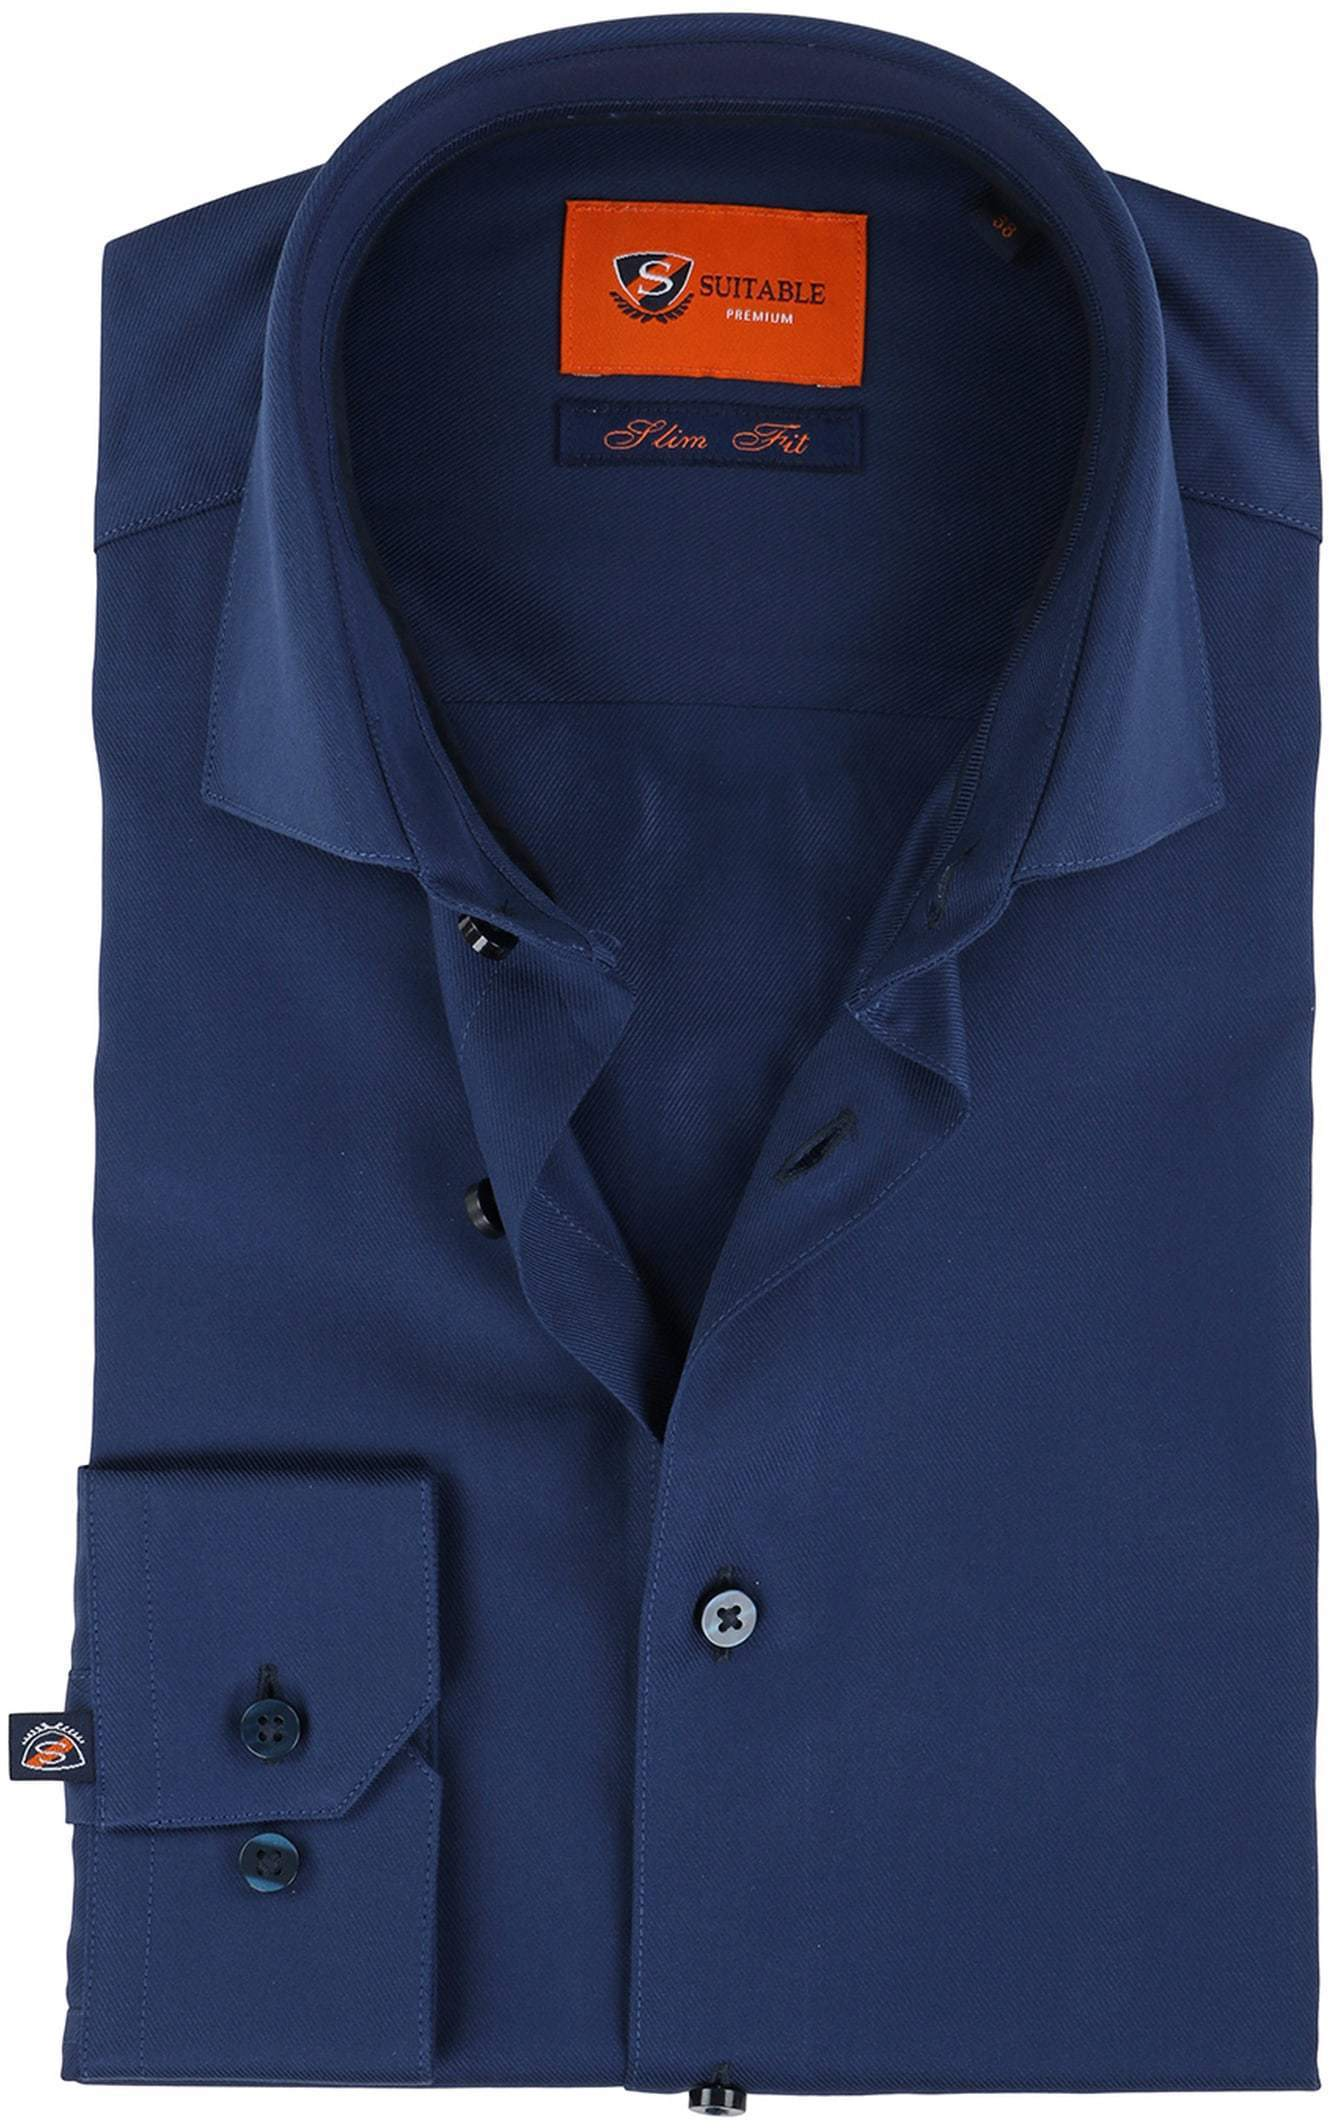 Suitable Hemd Navy Twill DR-05